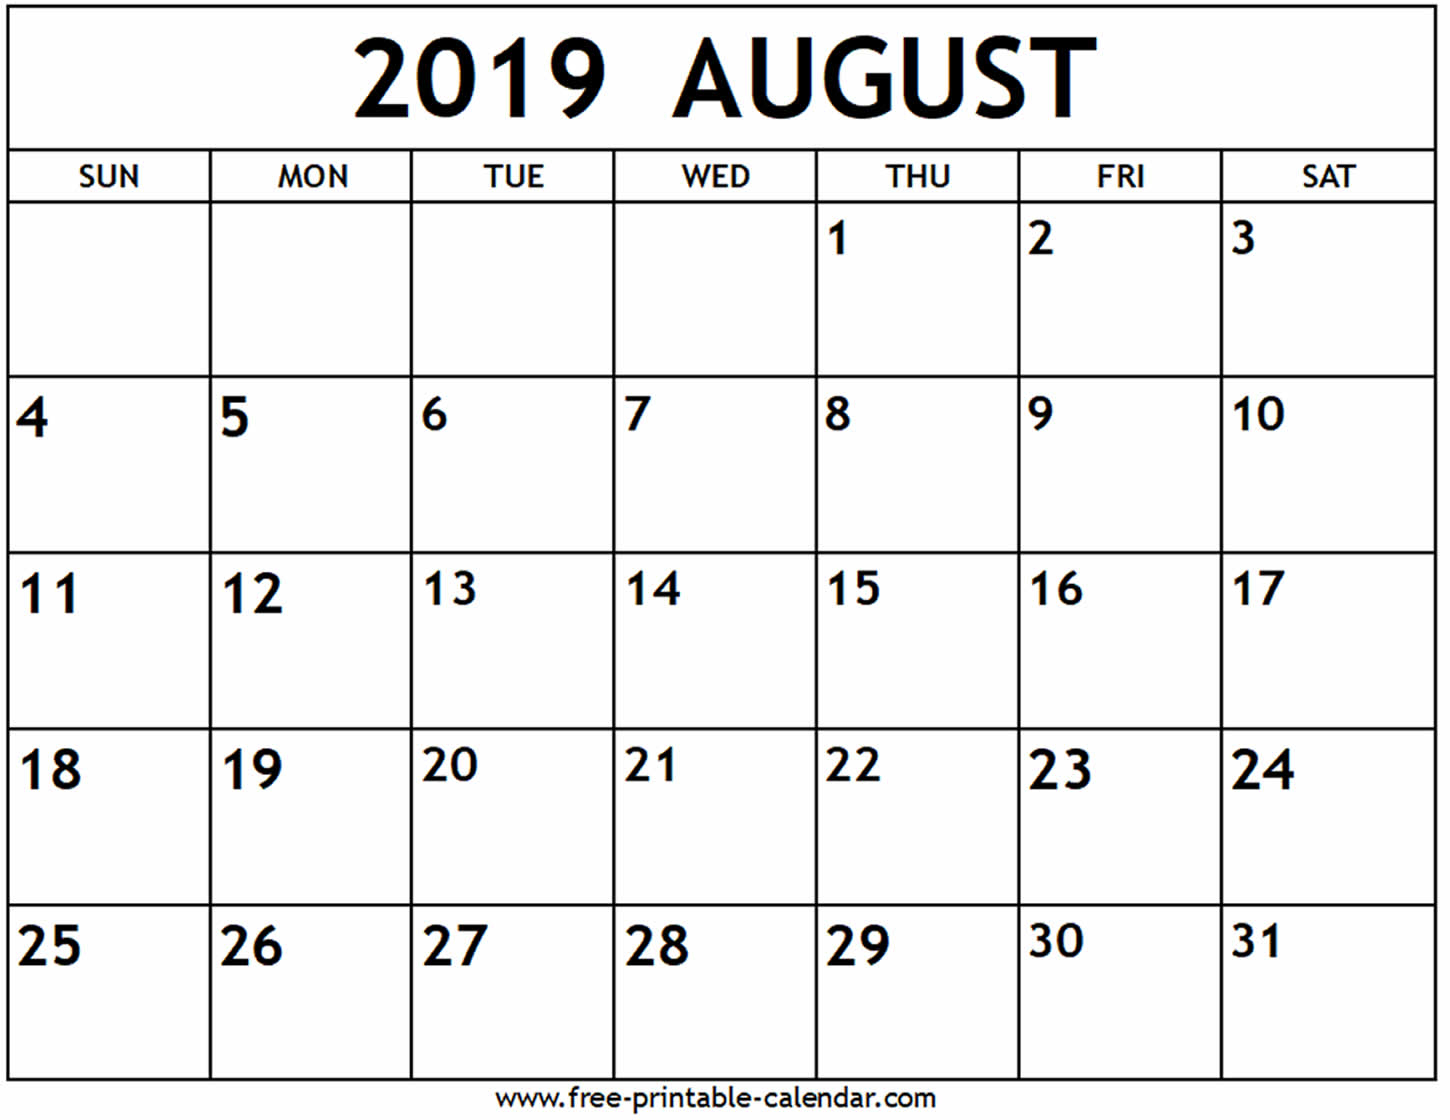 August 2019 Calendar - Free-Printable-Calendar within August Fun Calendar Template